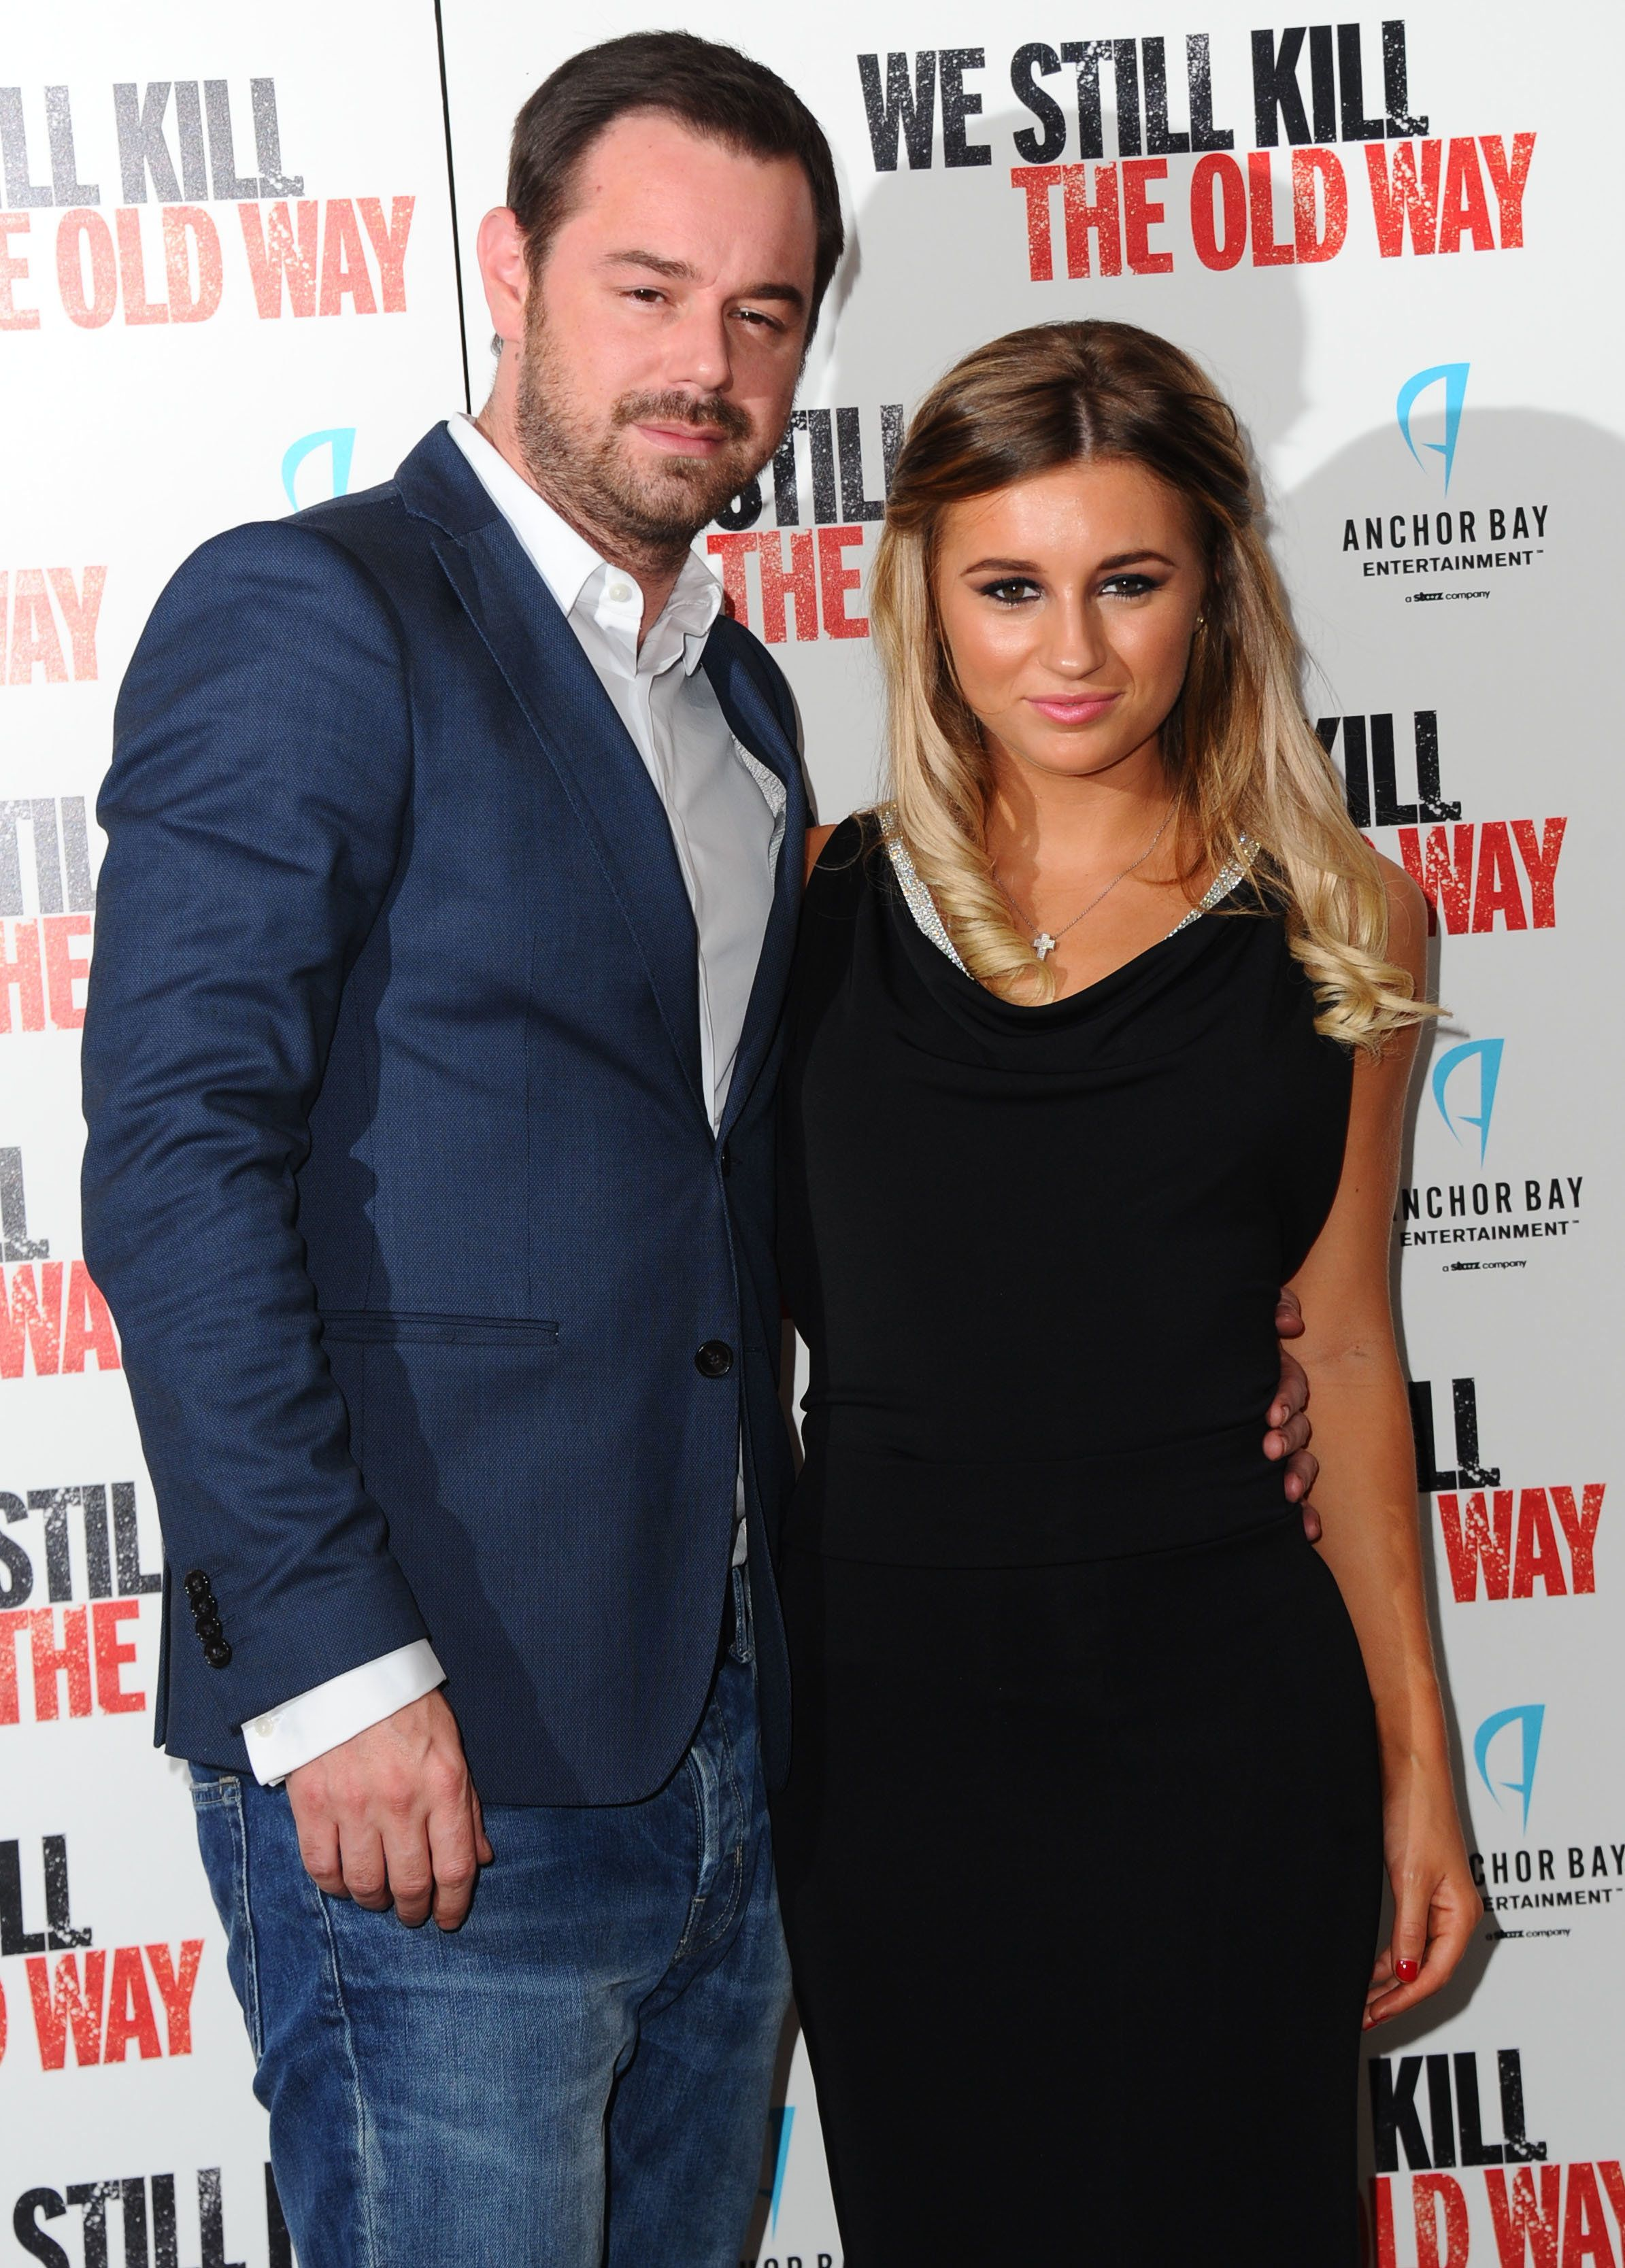 Danny Dyer's Daughter, Dani, Forced To Quit New Reality Show 'Survival Of The Fittest' After Only A